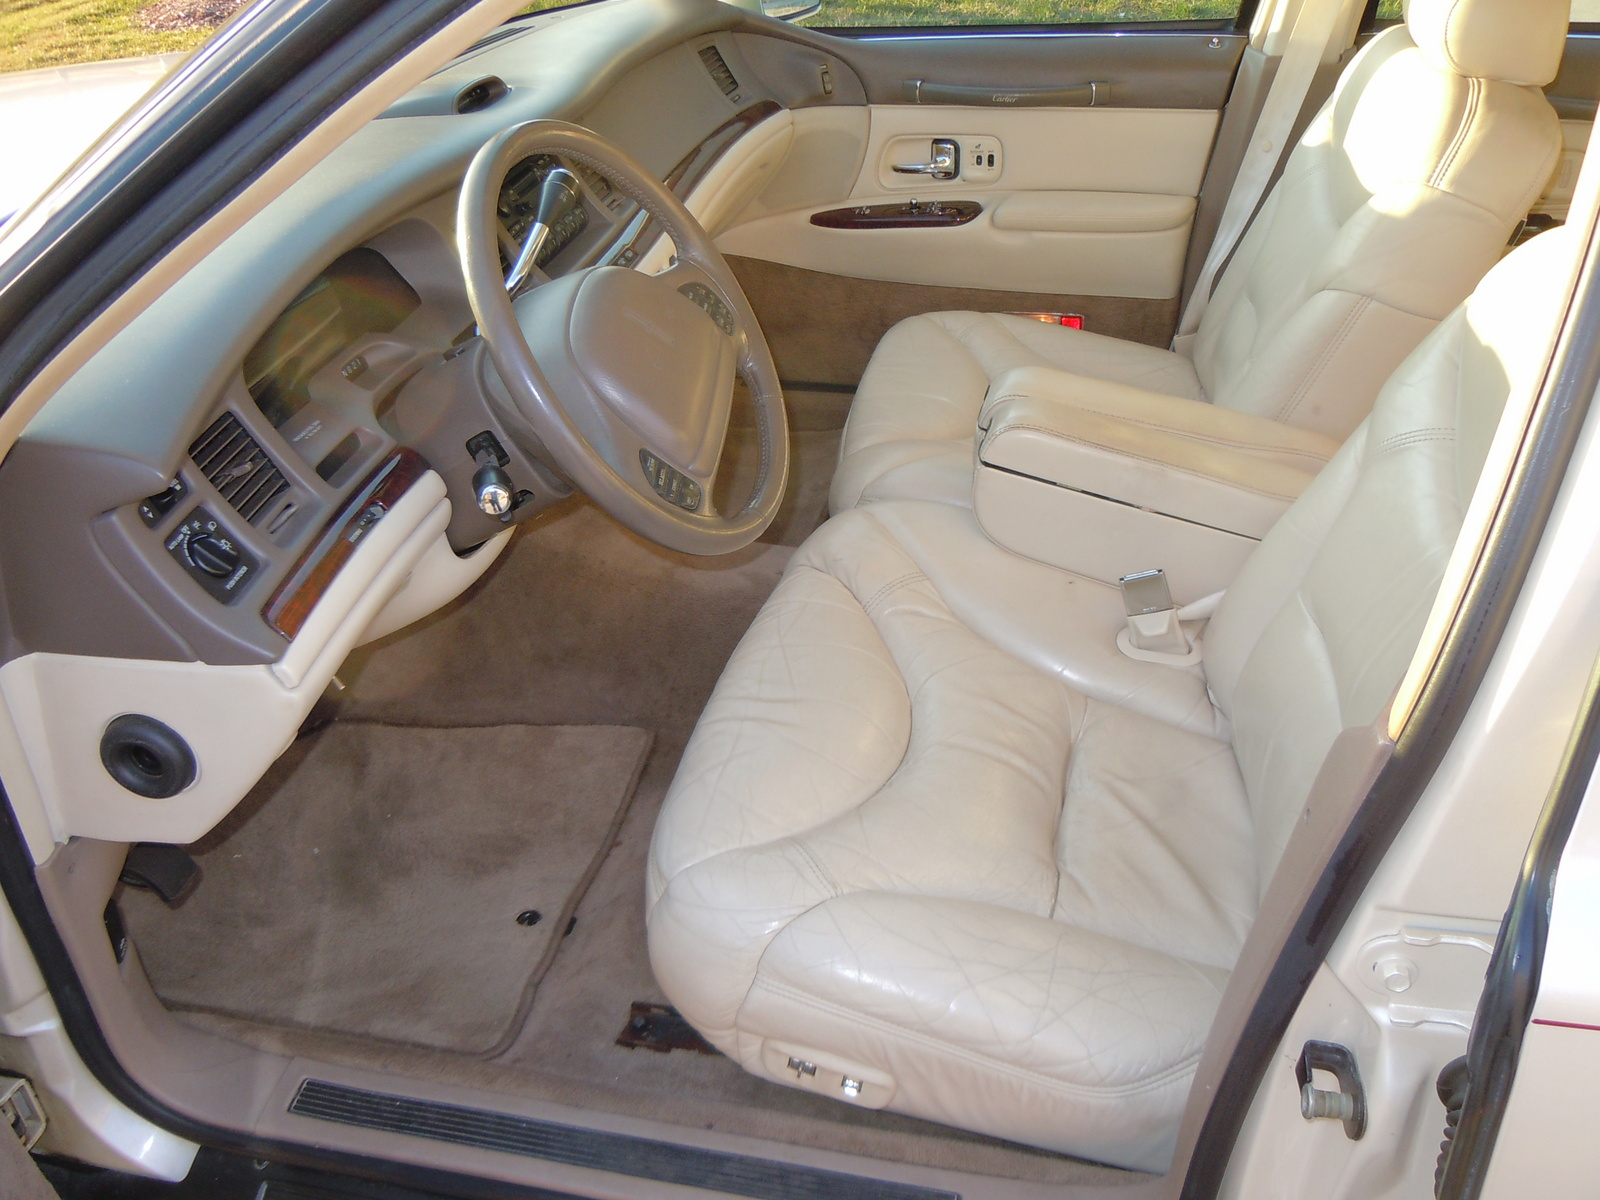 1997 lincoln town car interior pictures cargurus. Black Bedroom Furniture Sets. Home Design Ideas